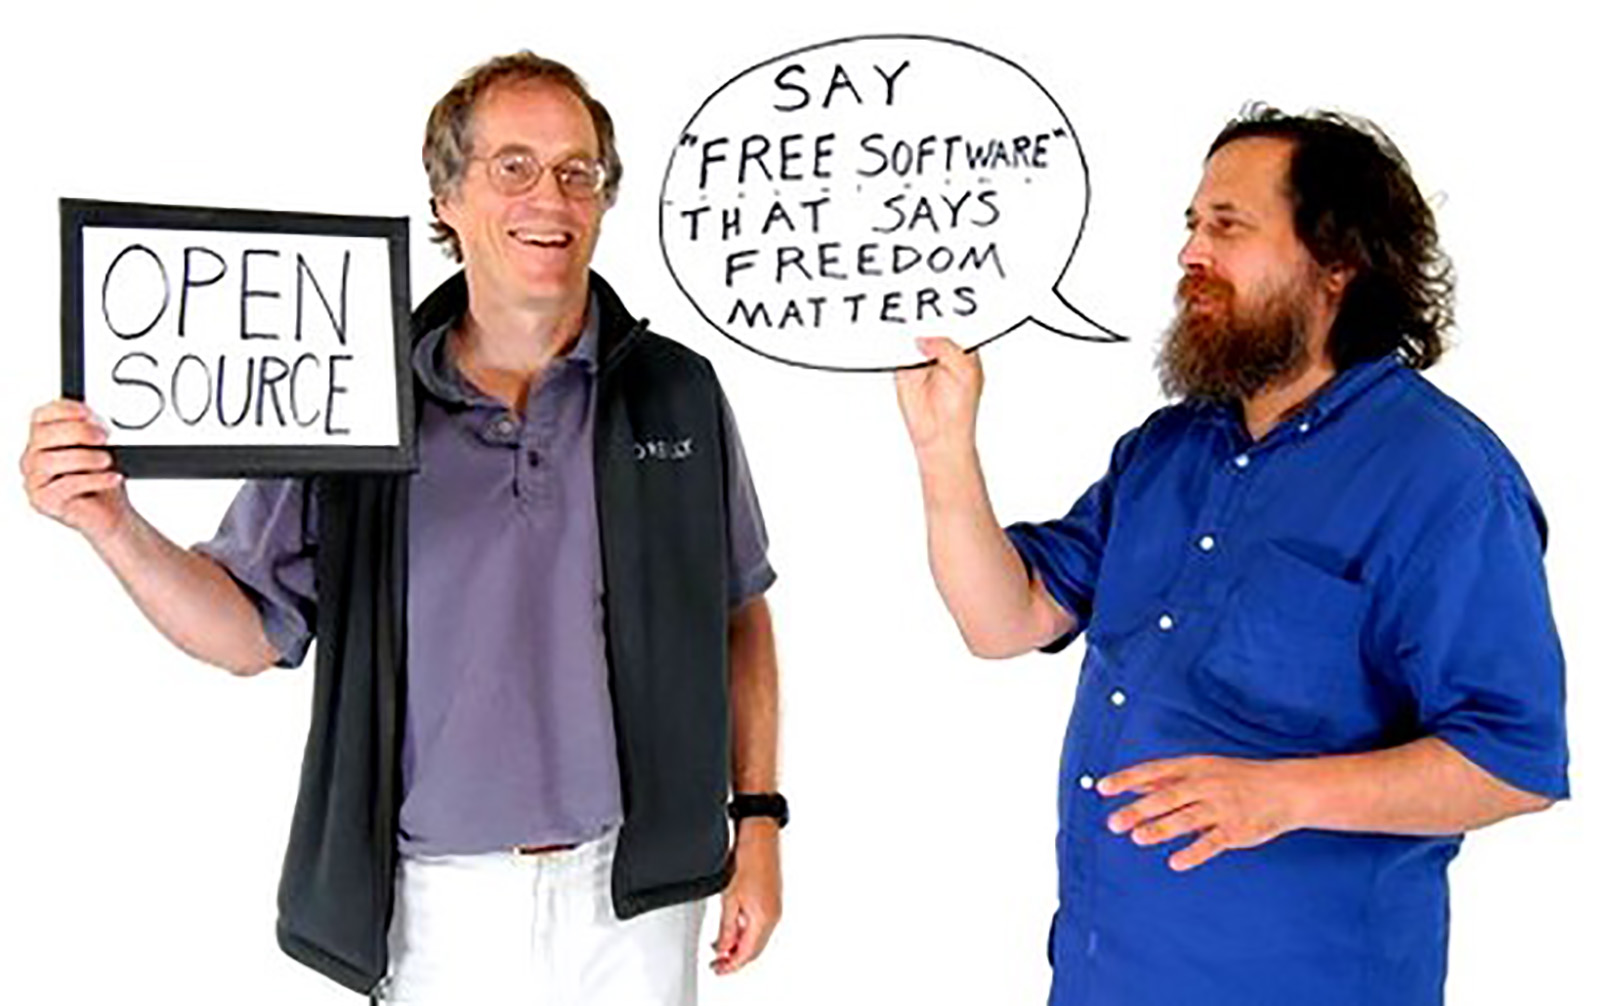 Tim O'Reilly & Richard Stallman